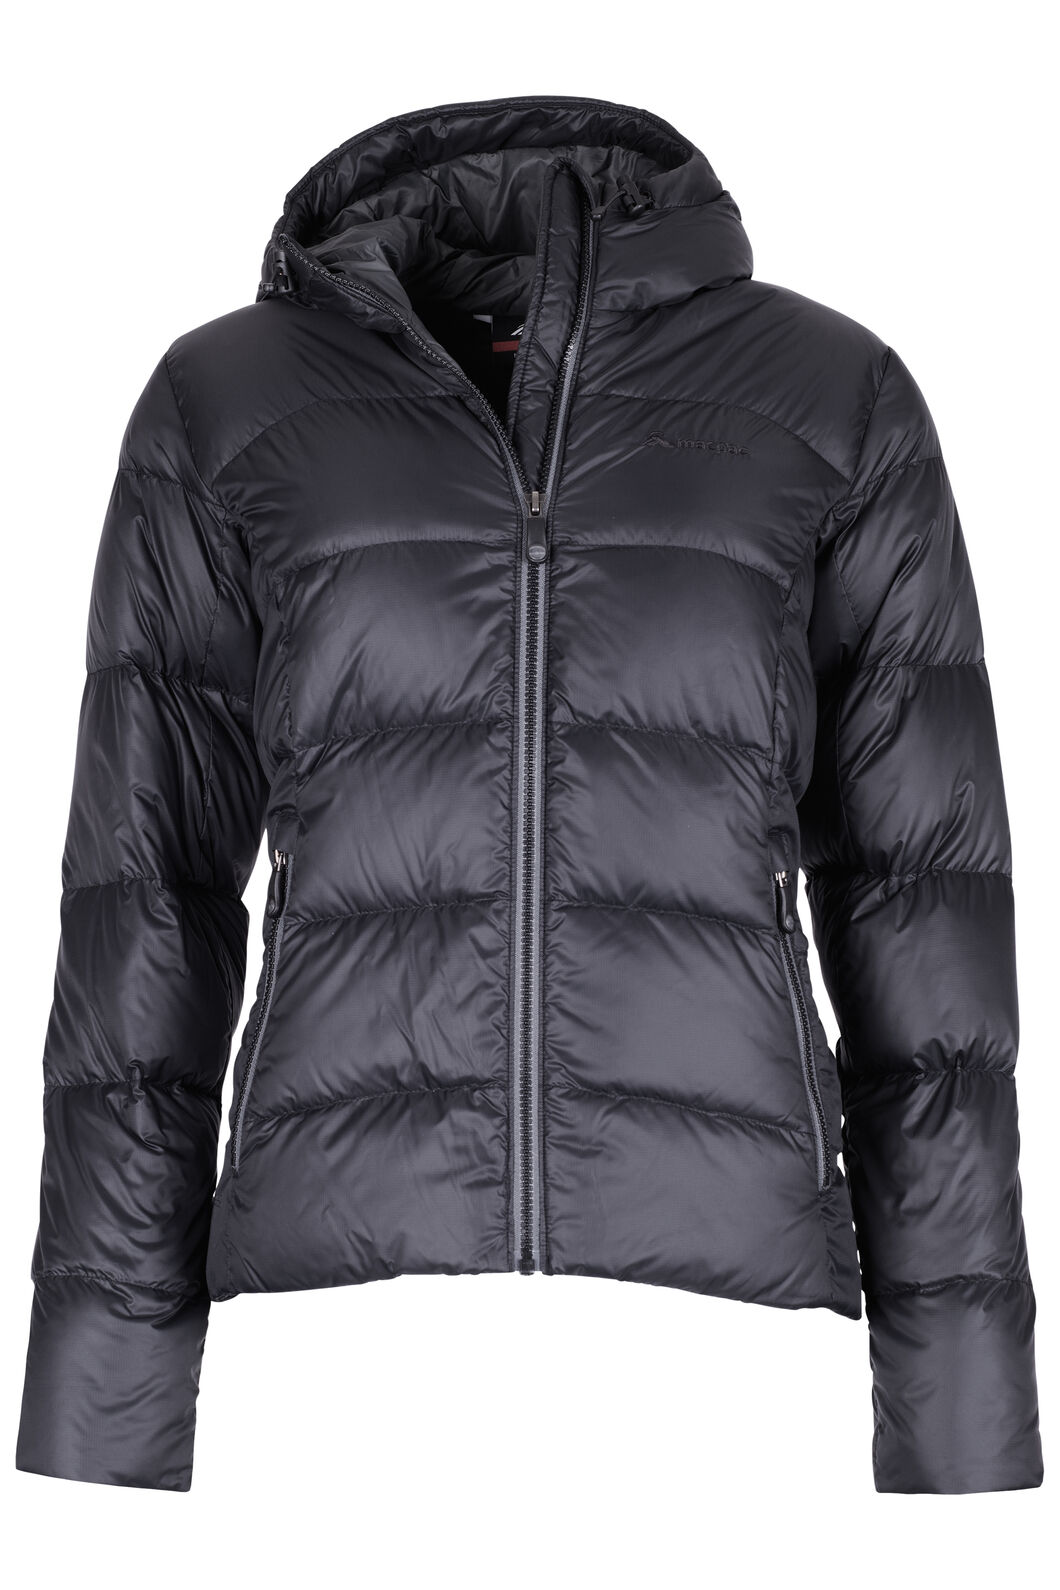 Macpac Sundowner Hooded HyperDRY™ Down Jacket - Women's, Black, hi-res